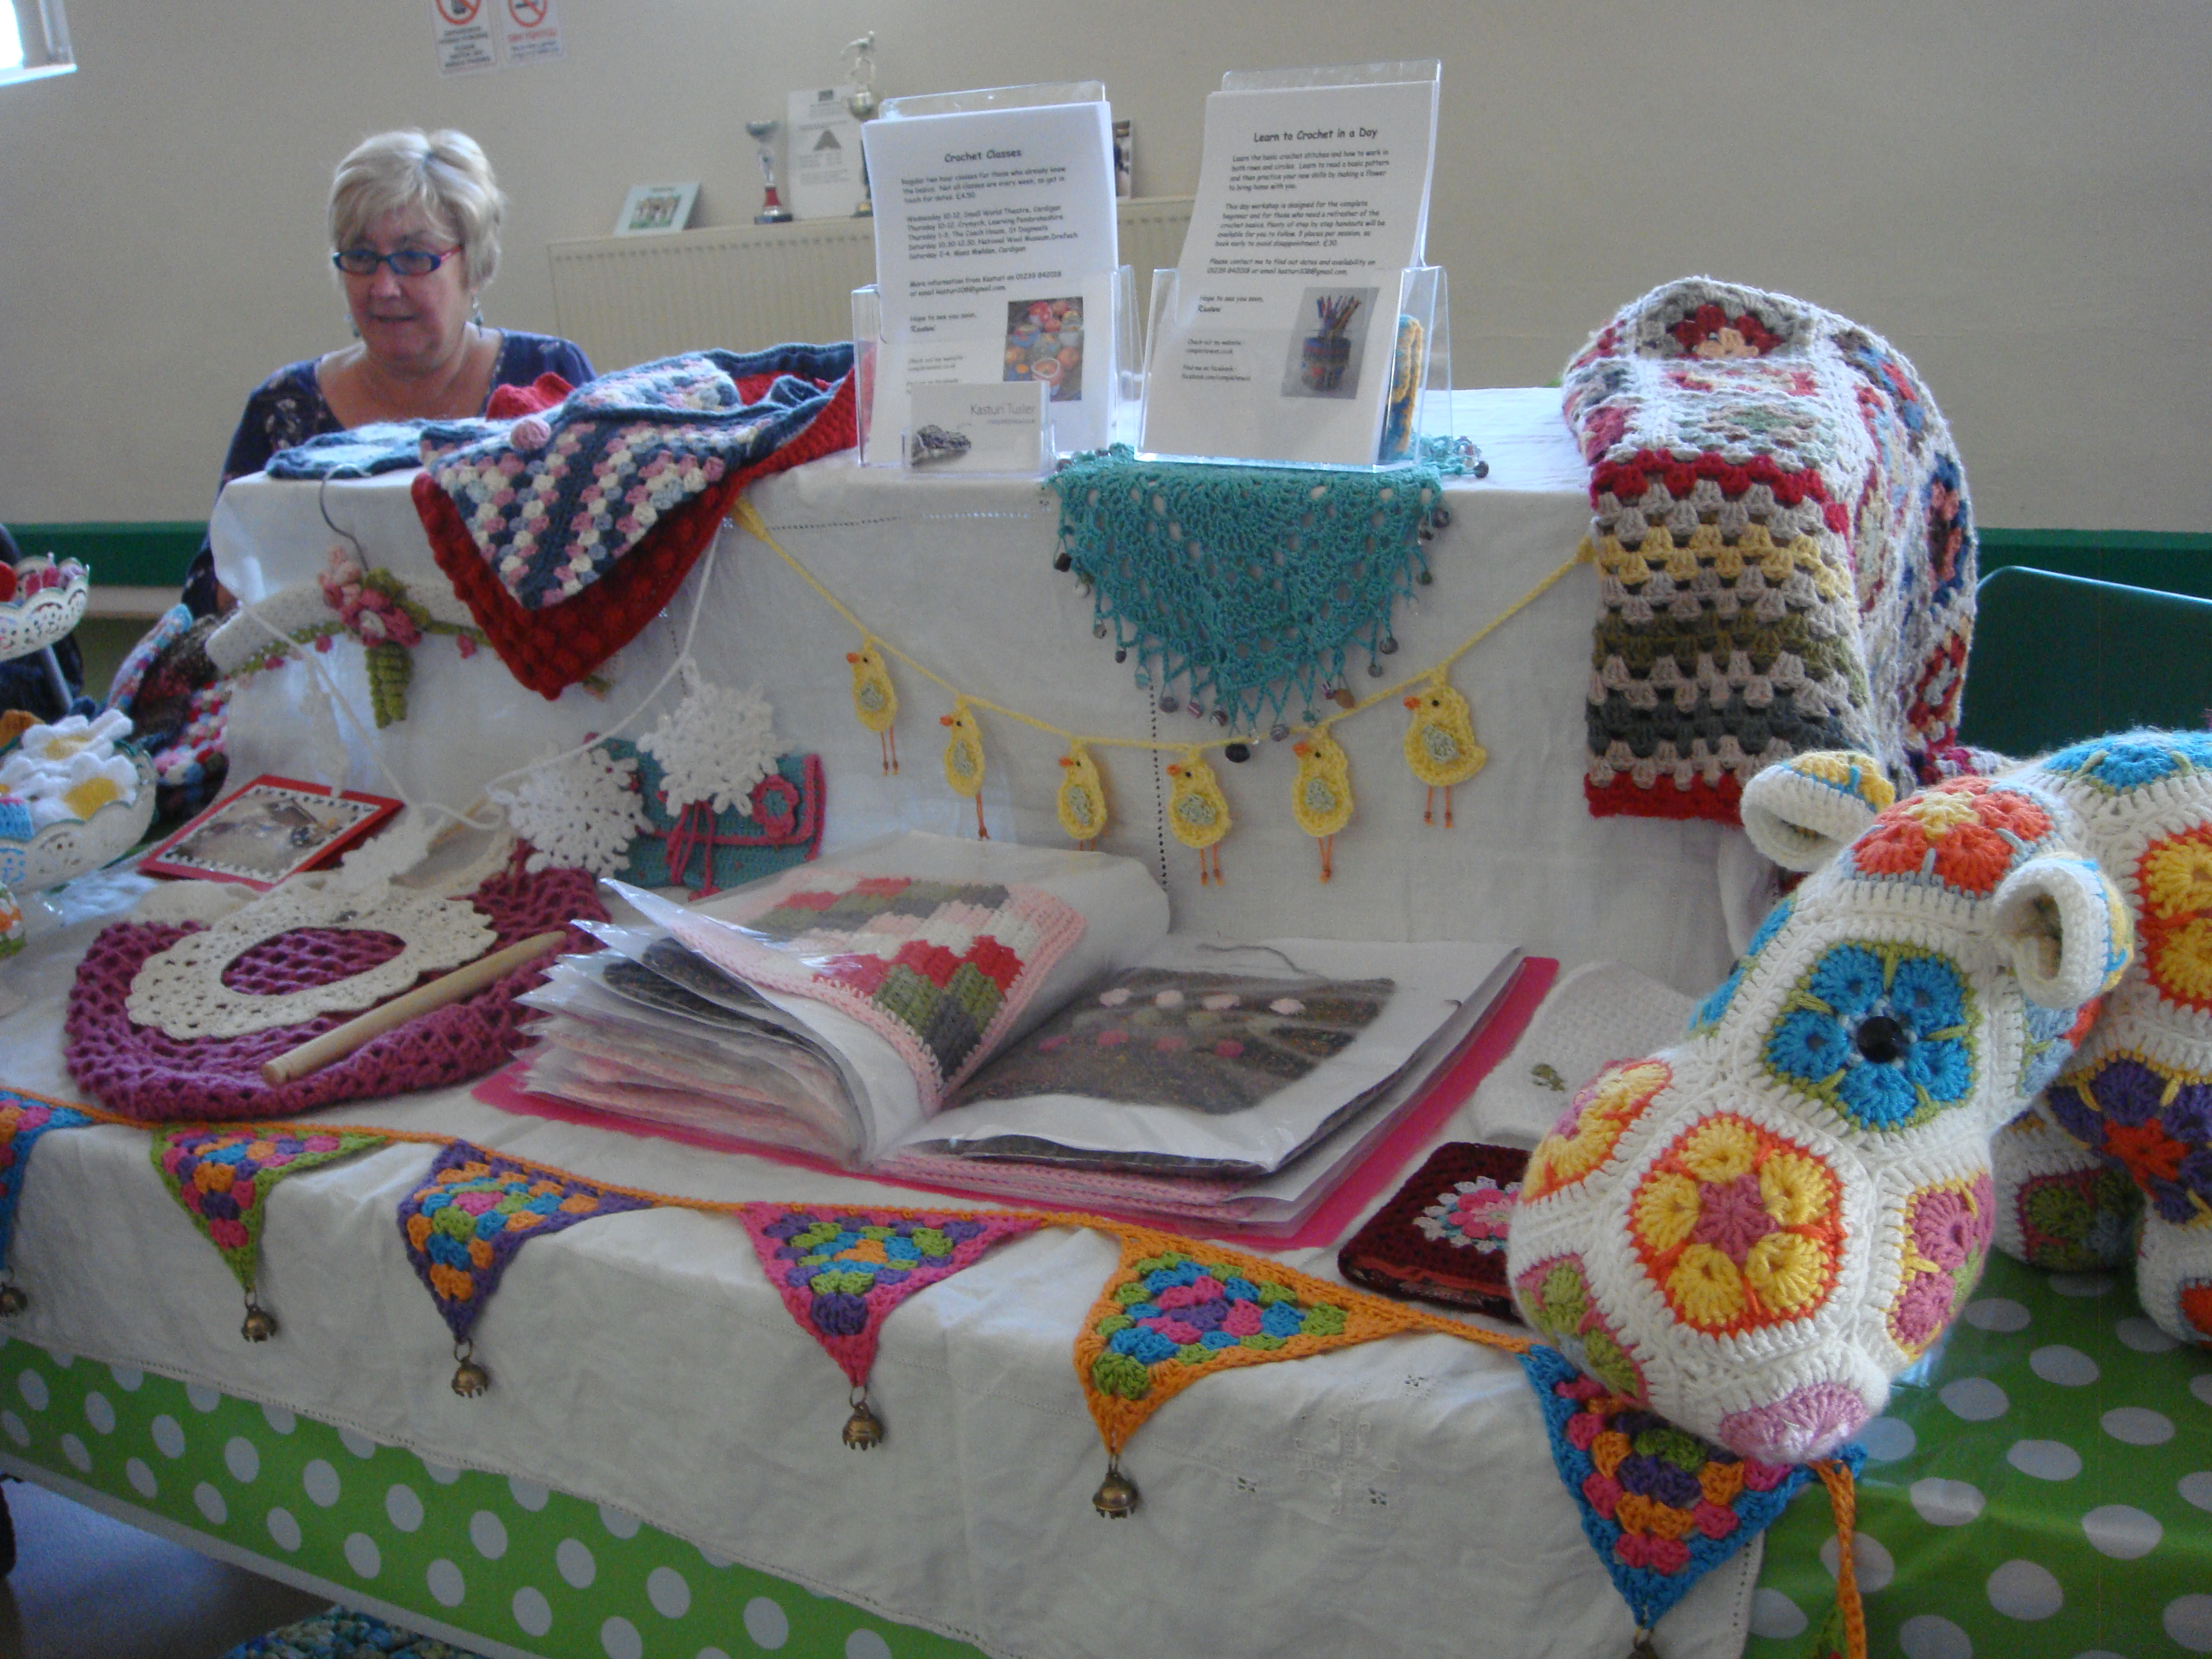 A nice selection of crochet items, with Gaynor's Hippo right at the front